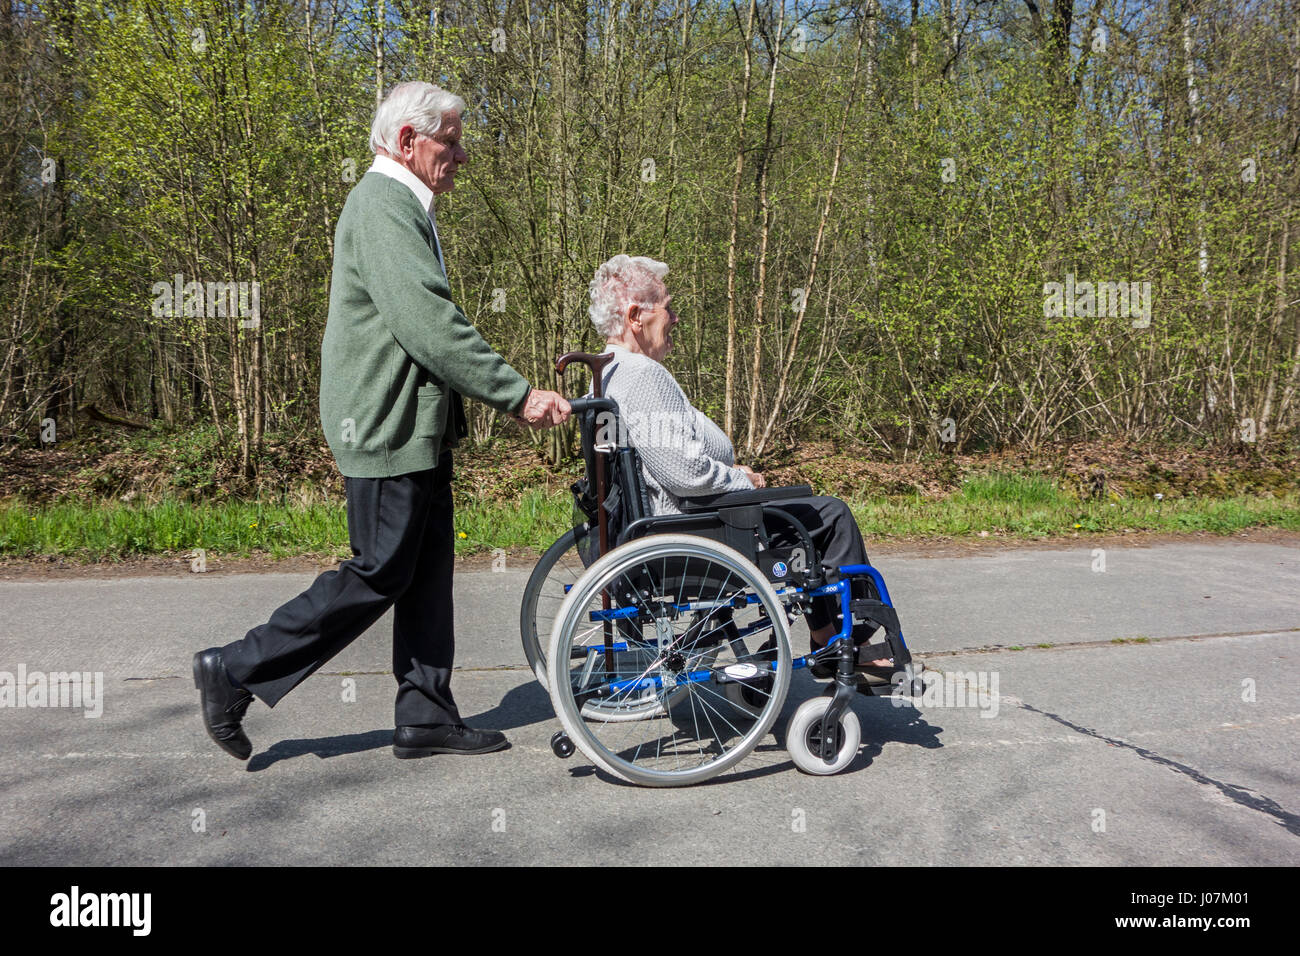 Retired husband taking disabled elderly wife in wheelchair for a walk in the park on a sunny day in spring - Stock Image